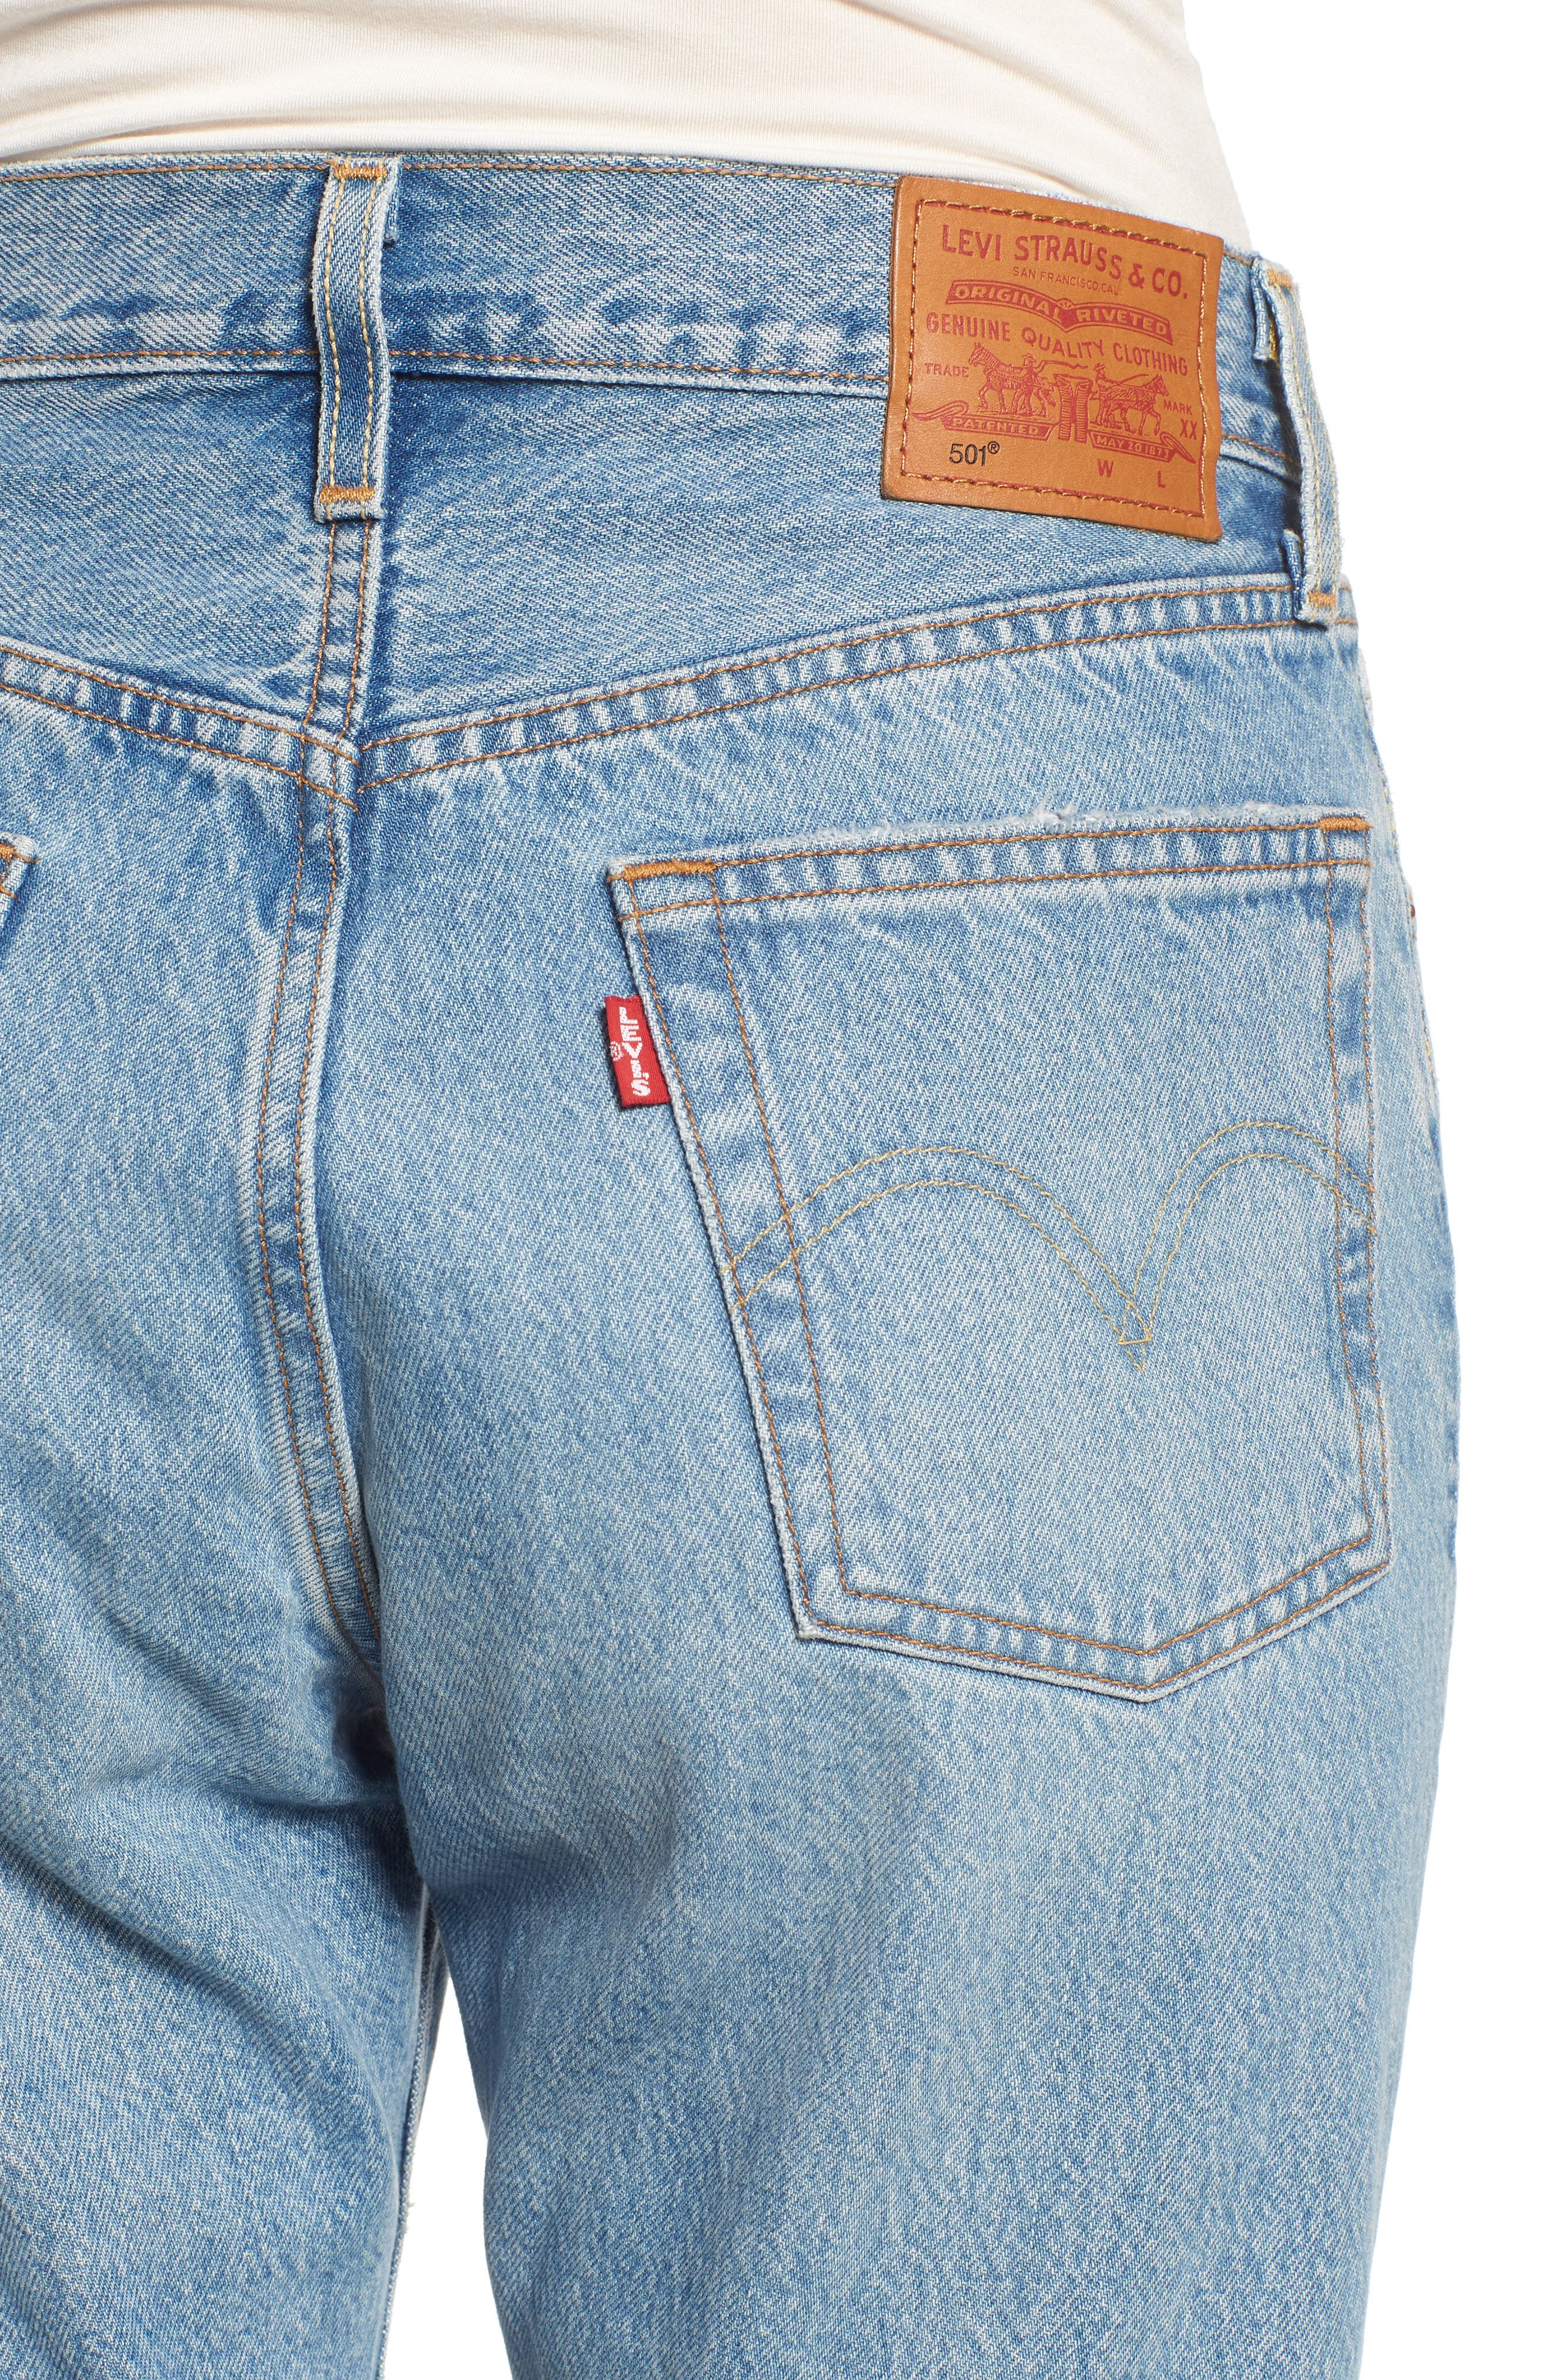 501<sup>®</sup> Ripped High Waist Crop Jeans,                             Alternate thumbnail 4, color,                             420